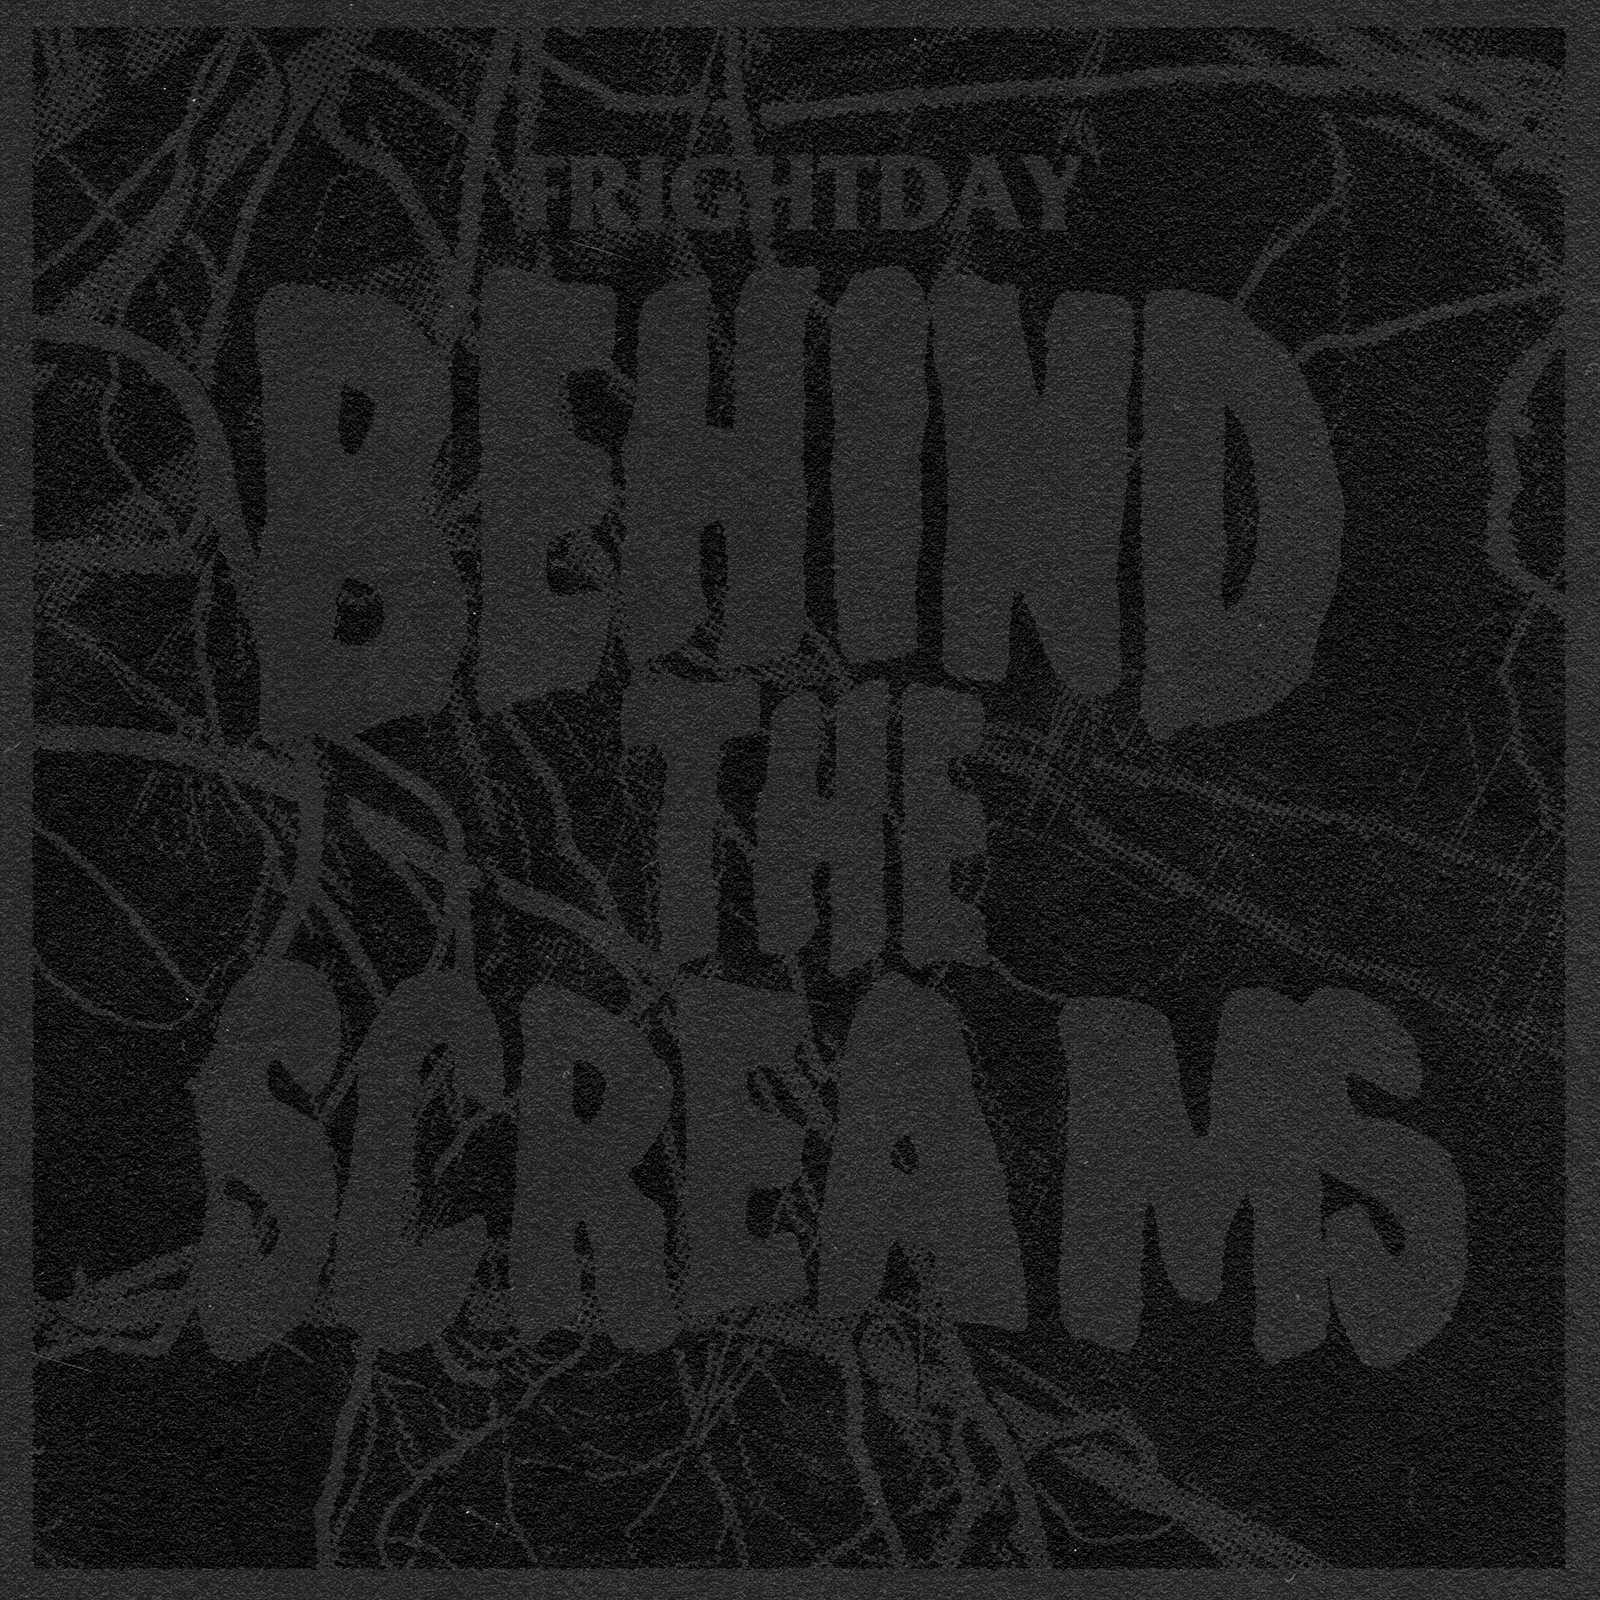 Behind the Screams: Adrenochrome (Excerpt)